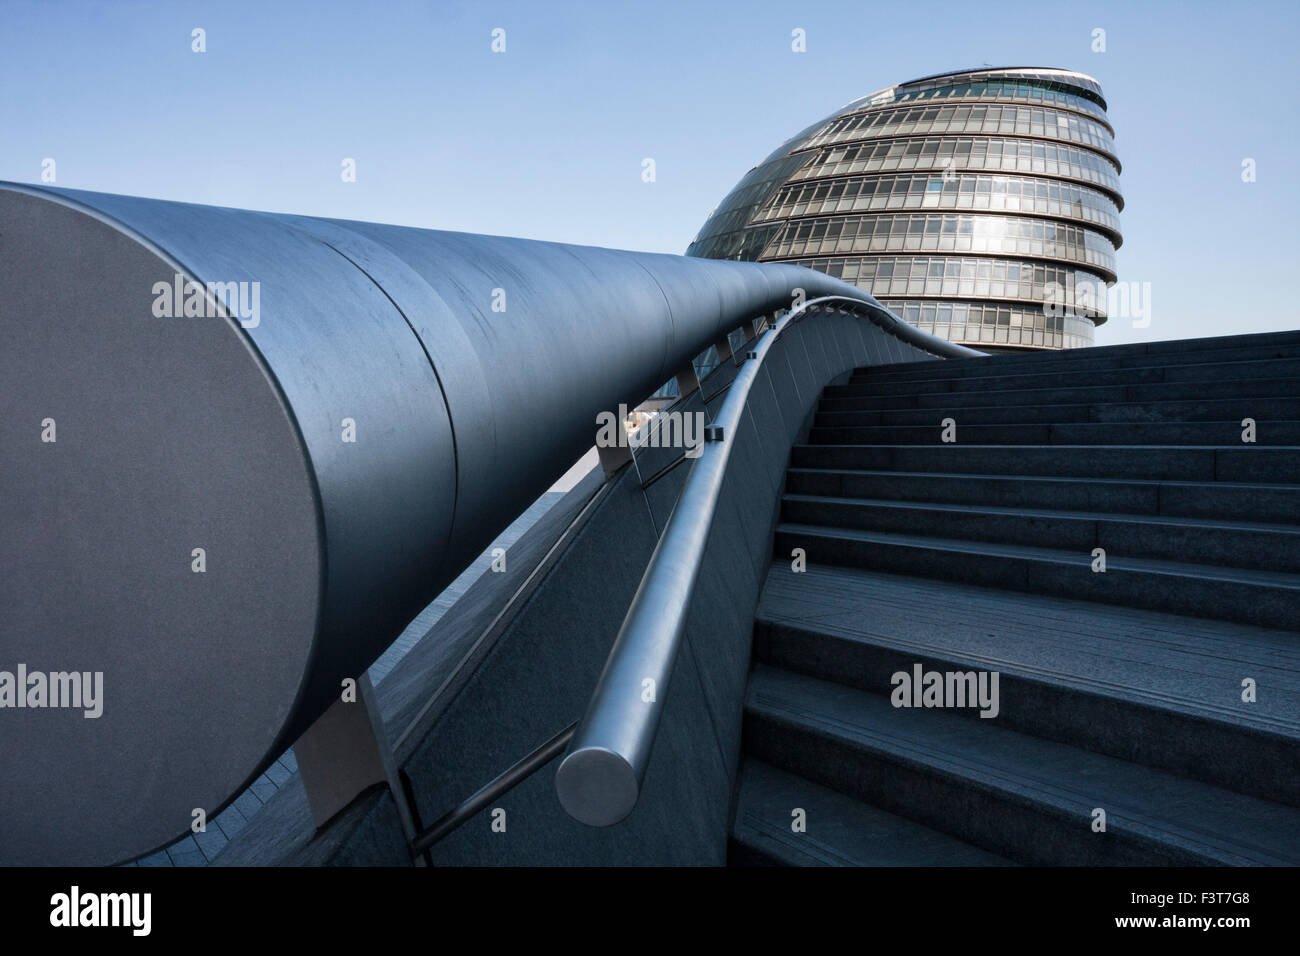 City Hall, Greater London Authority, The Queens Walk, Southwark, London, SE1, England, UK  from a low perspective - Stock Image